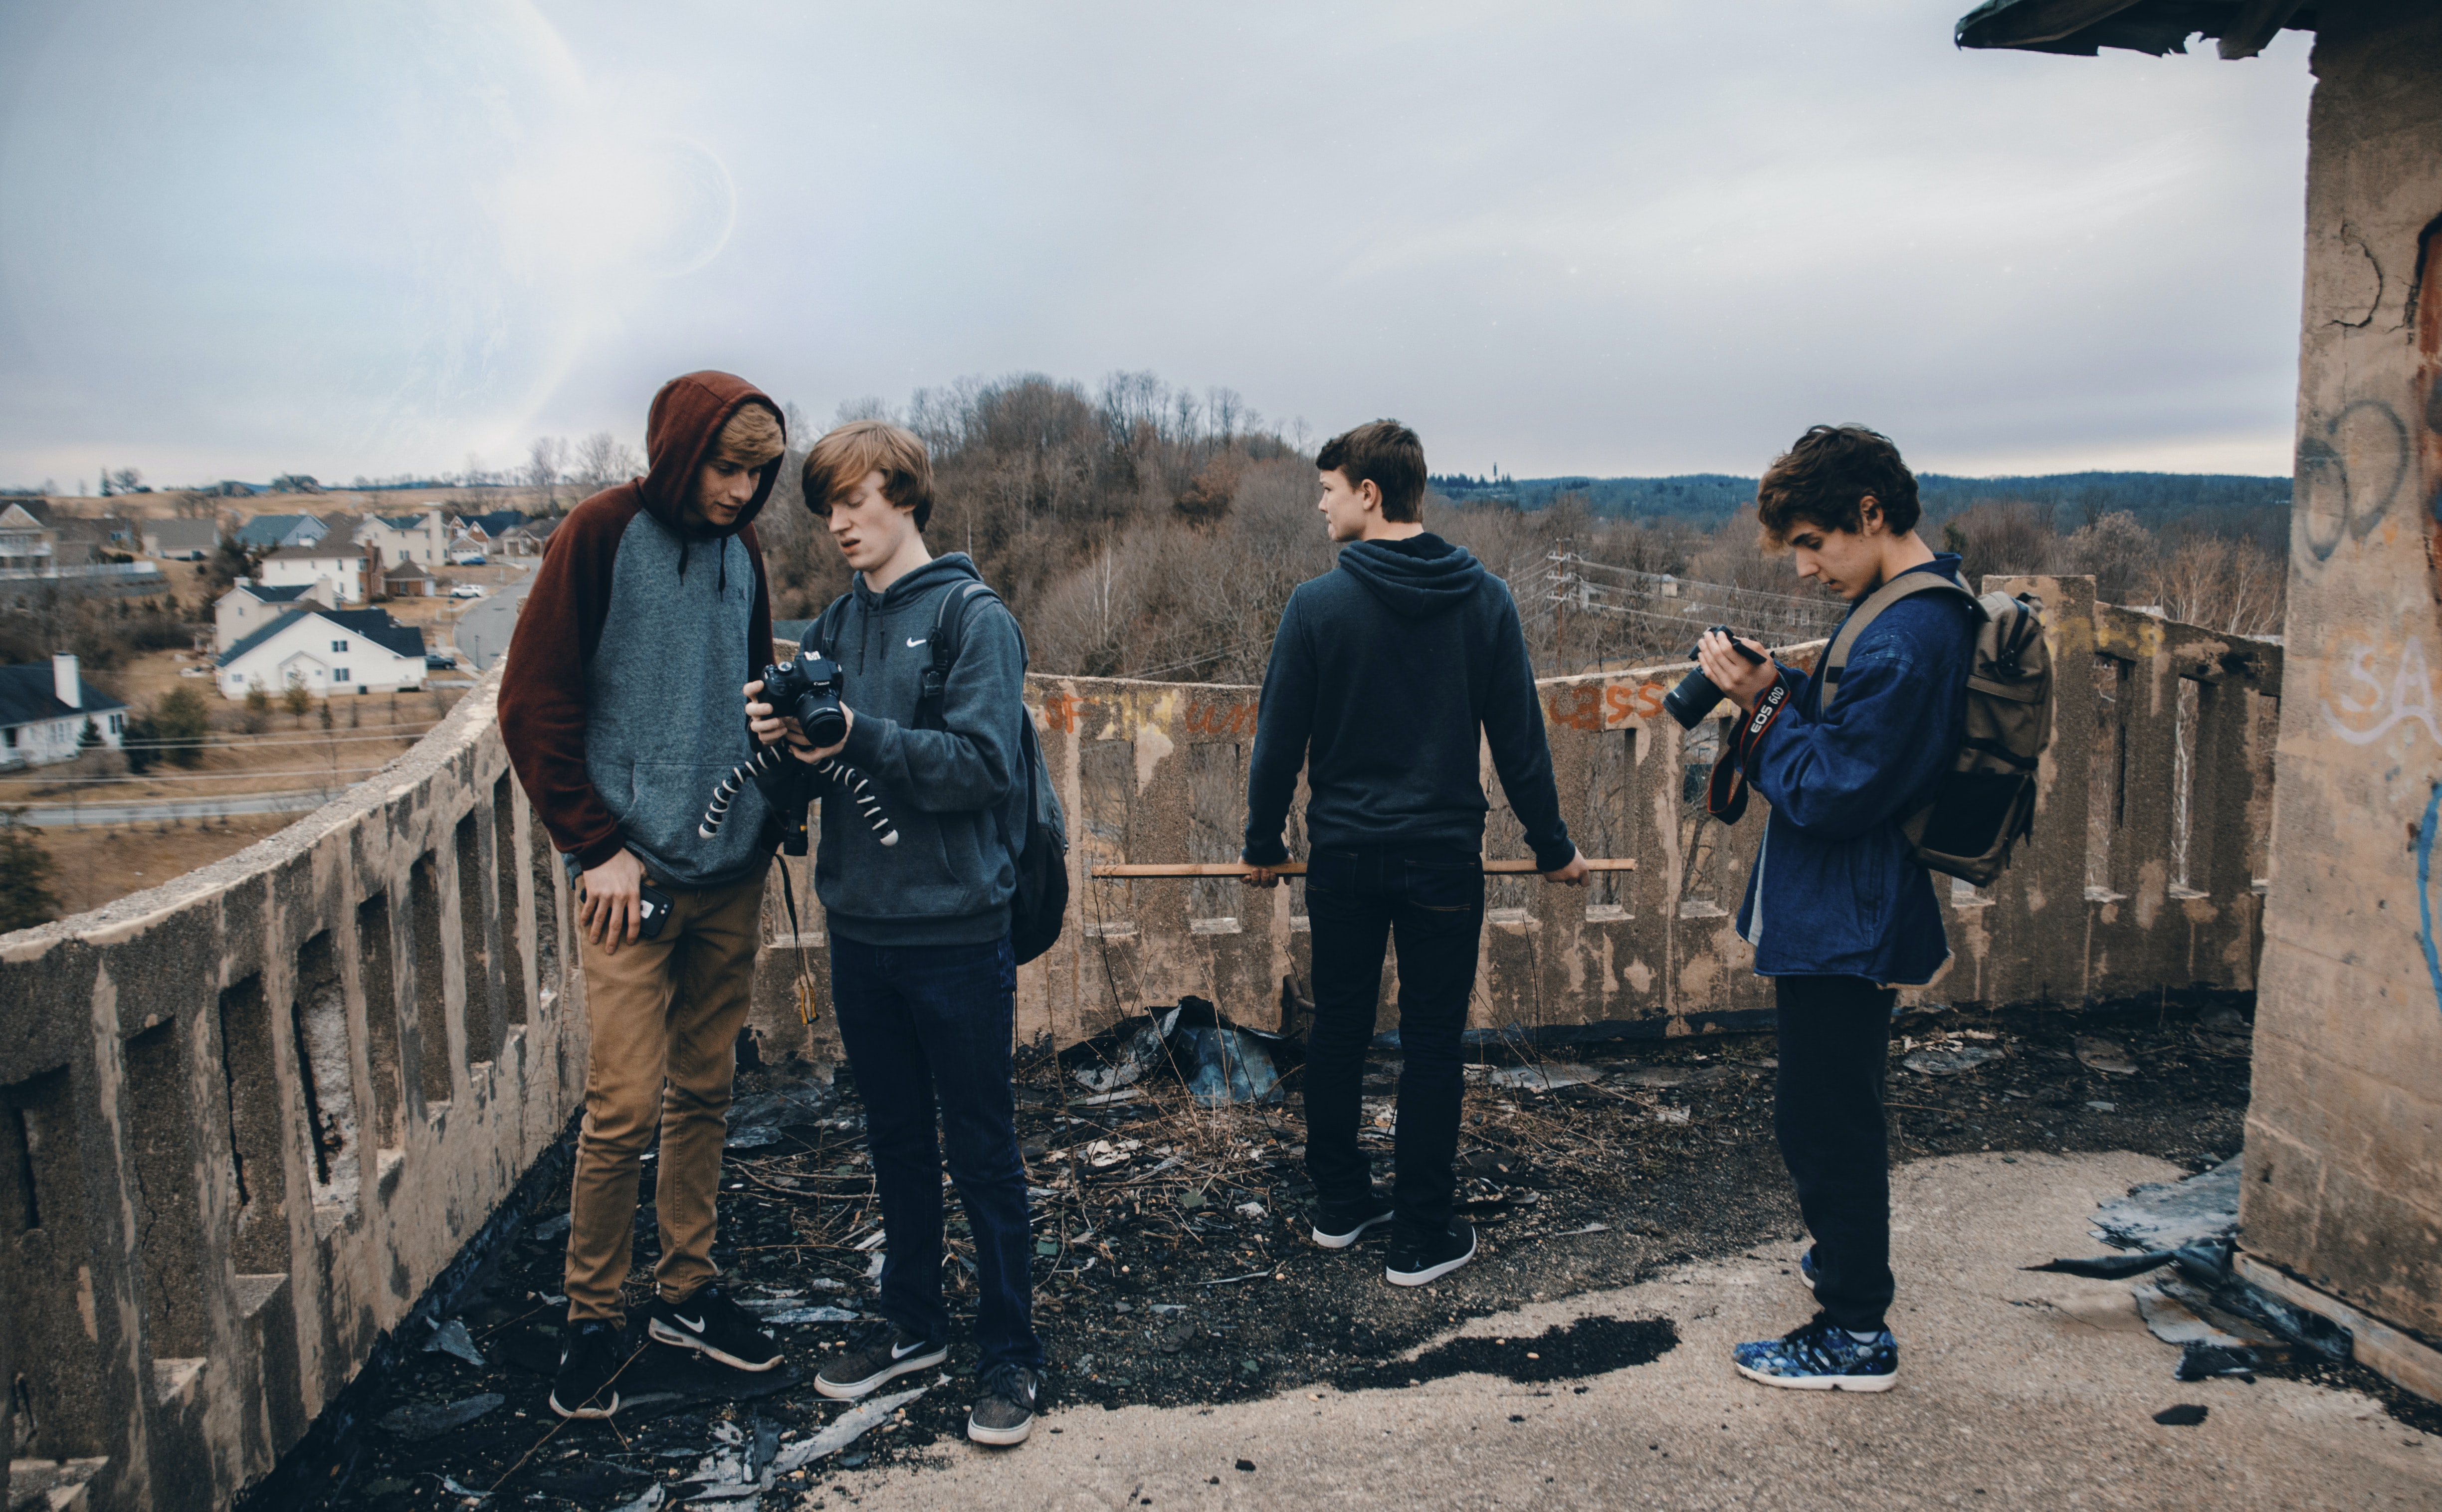 Group of friends in an abandoned building admiring the scenery and checking their cameras